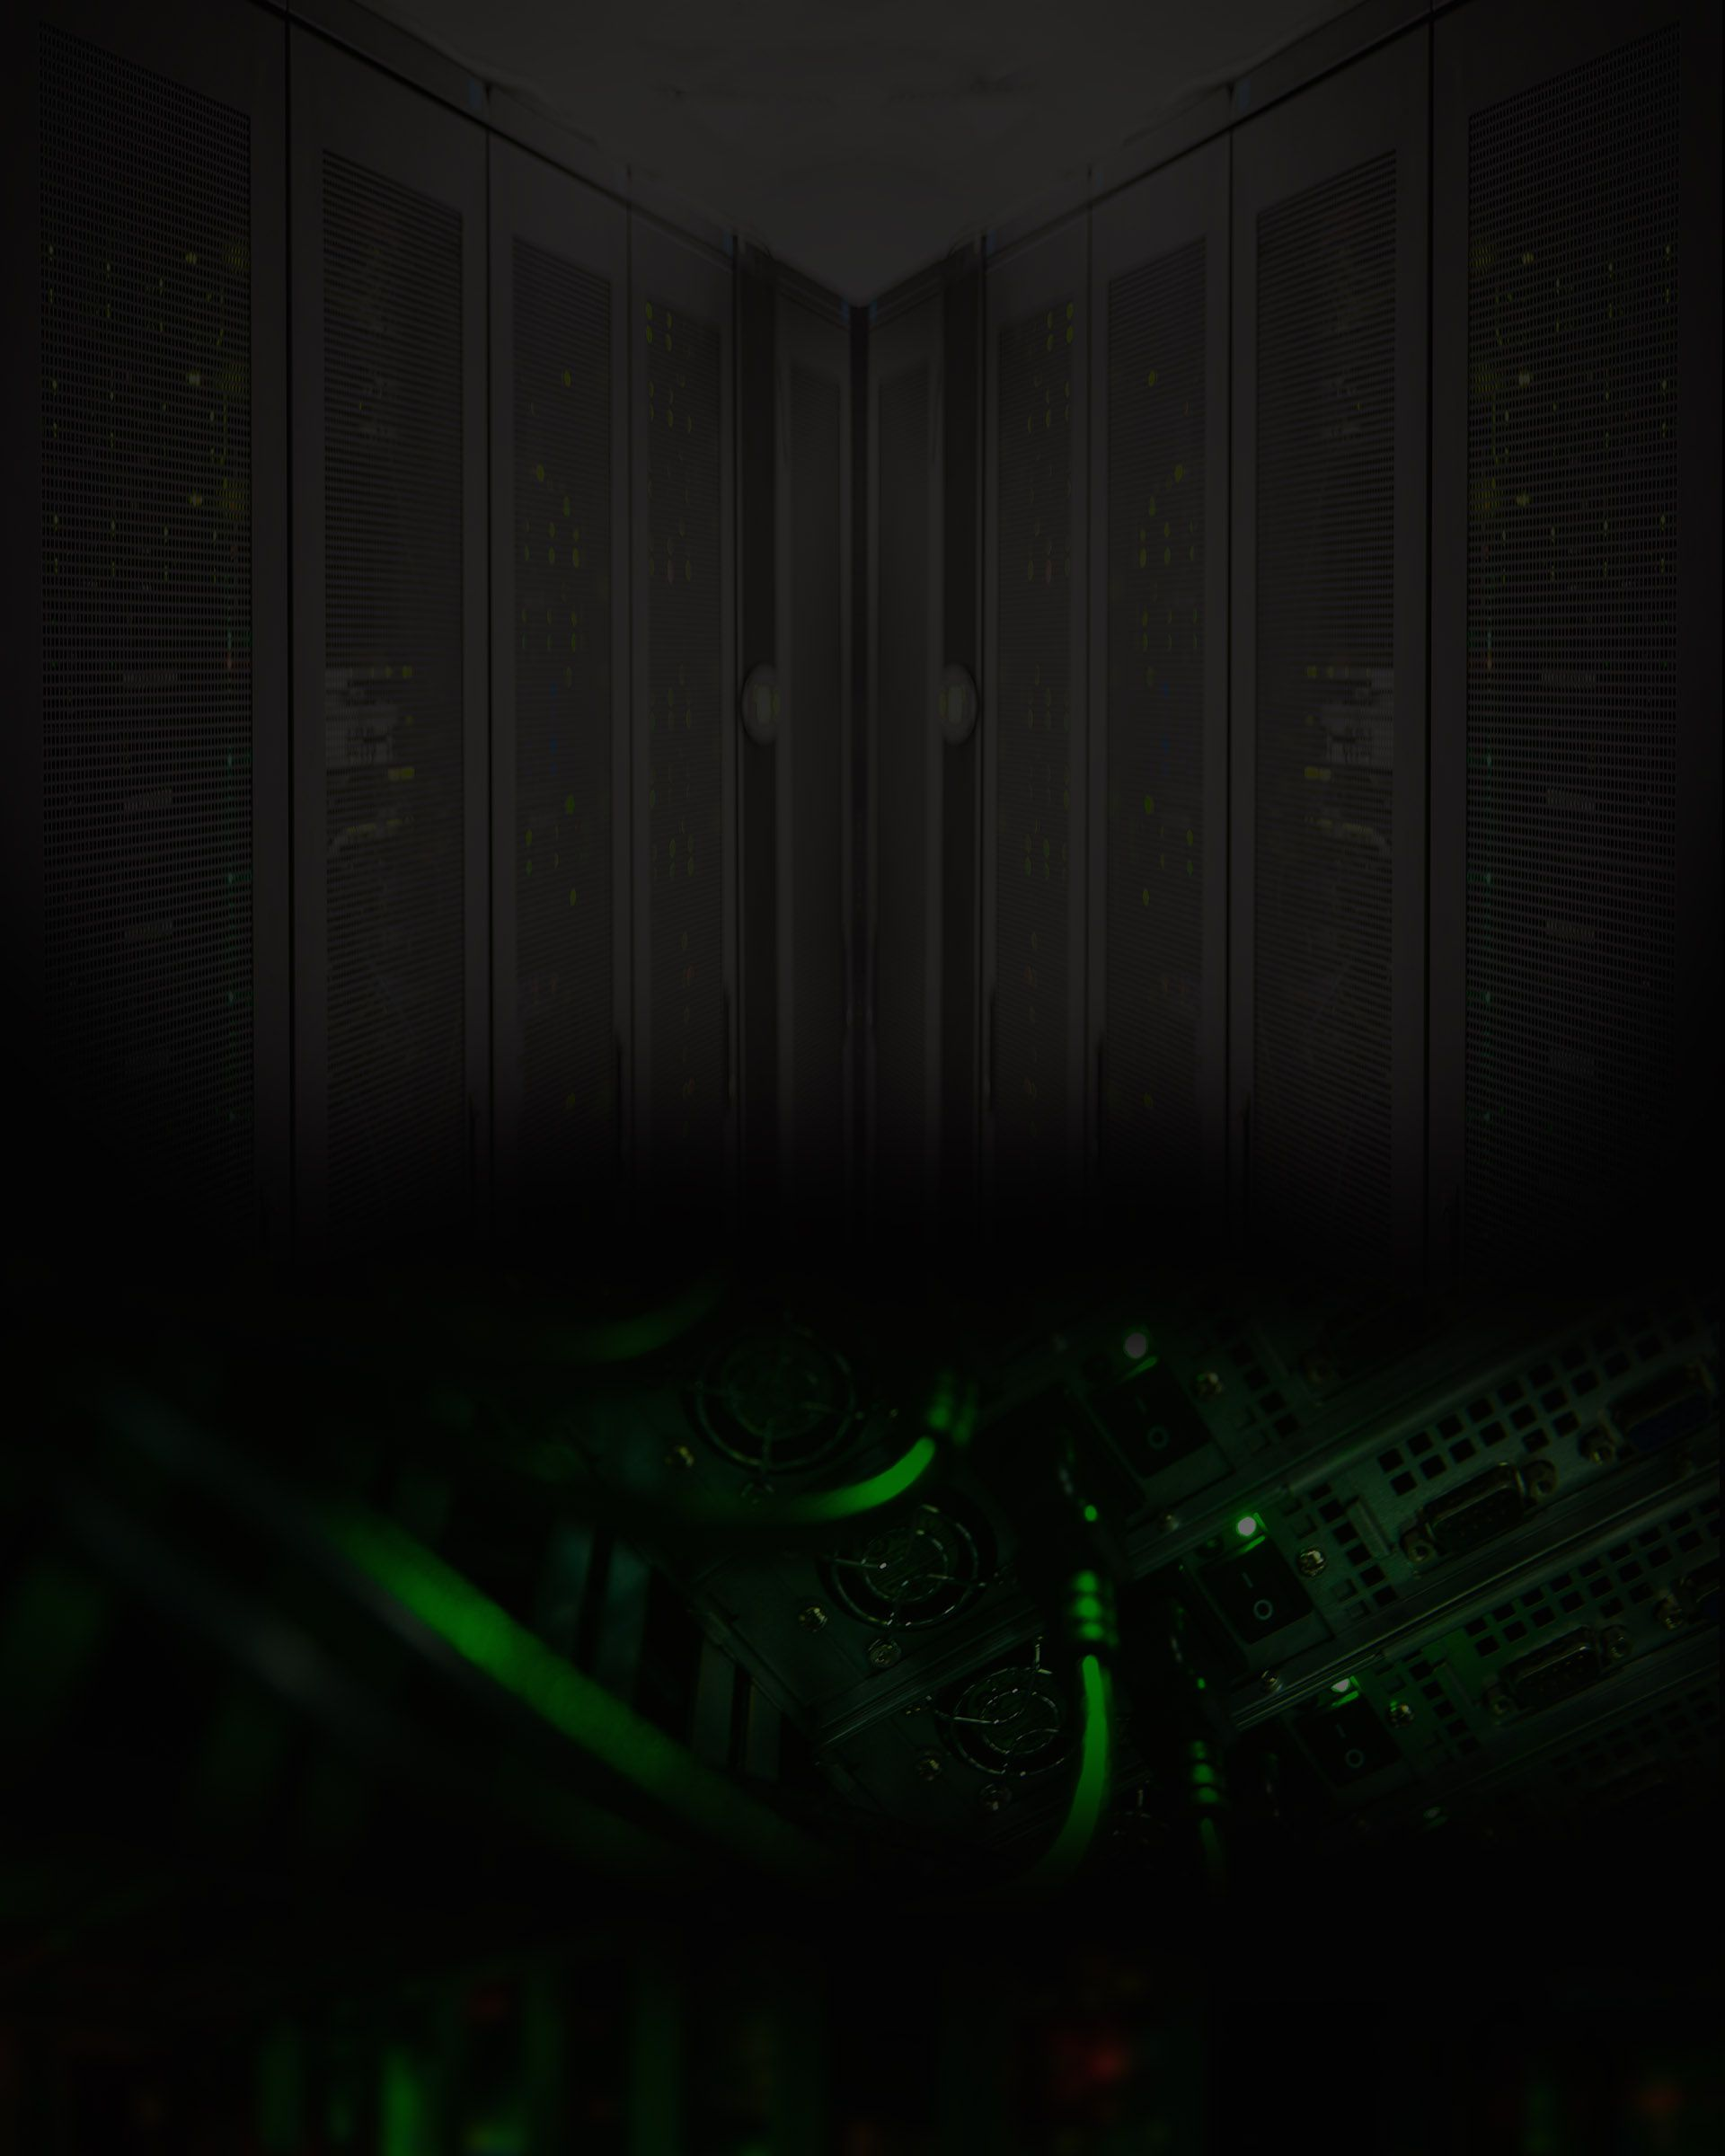 rackspace dark with green accents